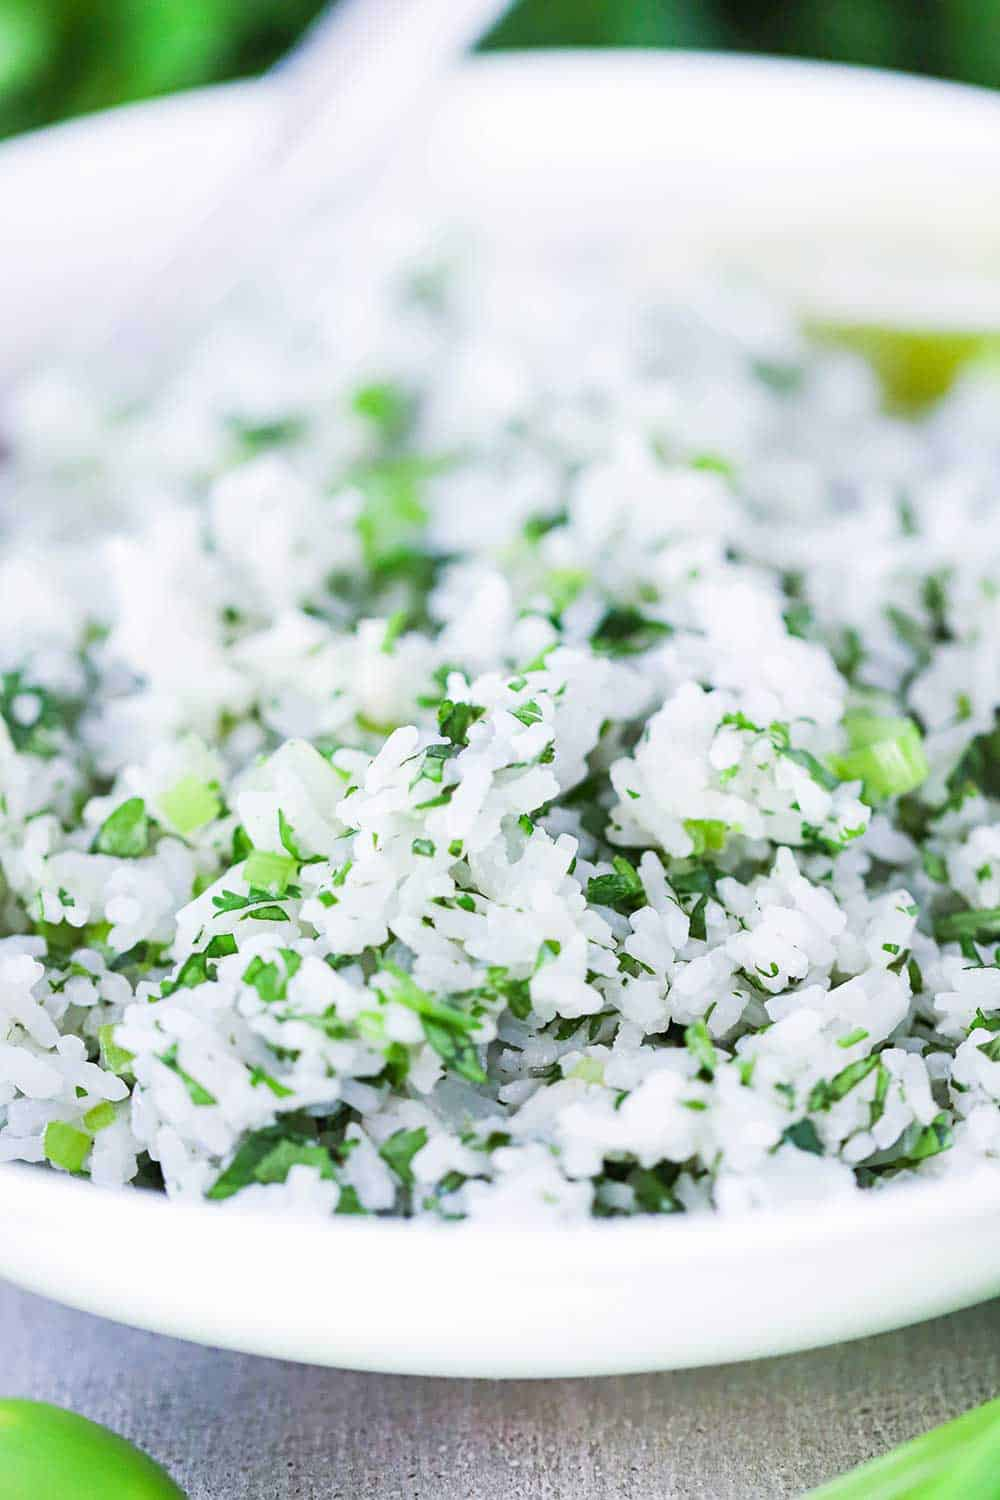 A close-up view of a white bowl filled with Cilantro Lime Rice with a silver spoon in it.